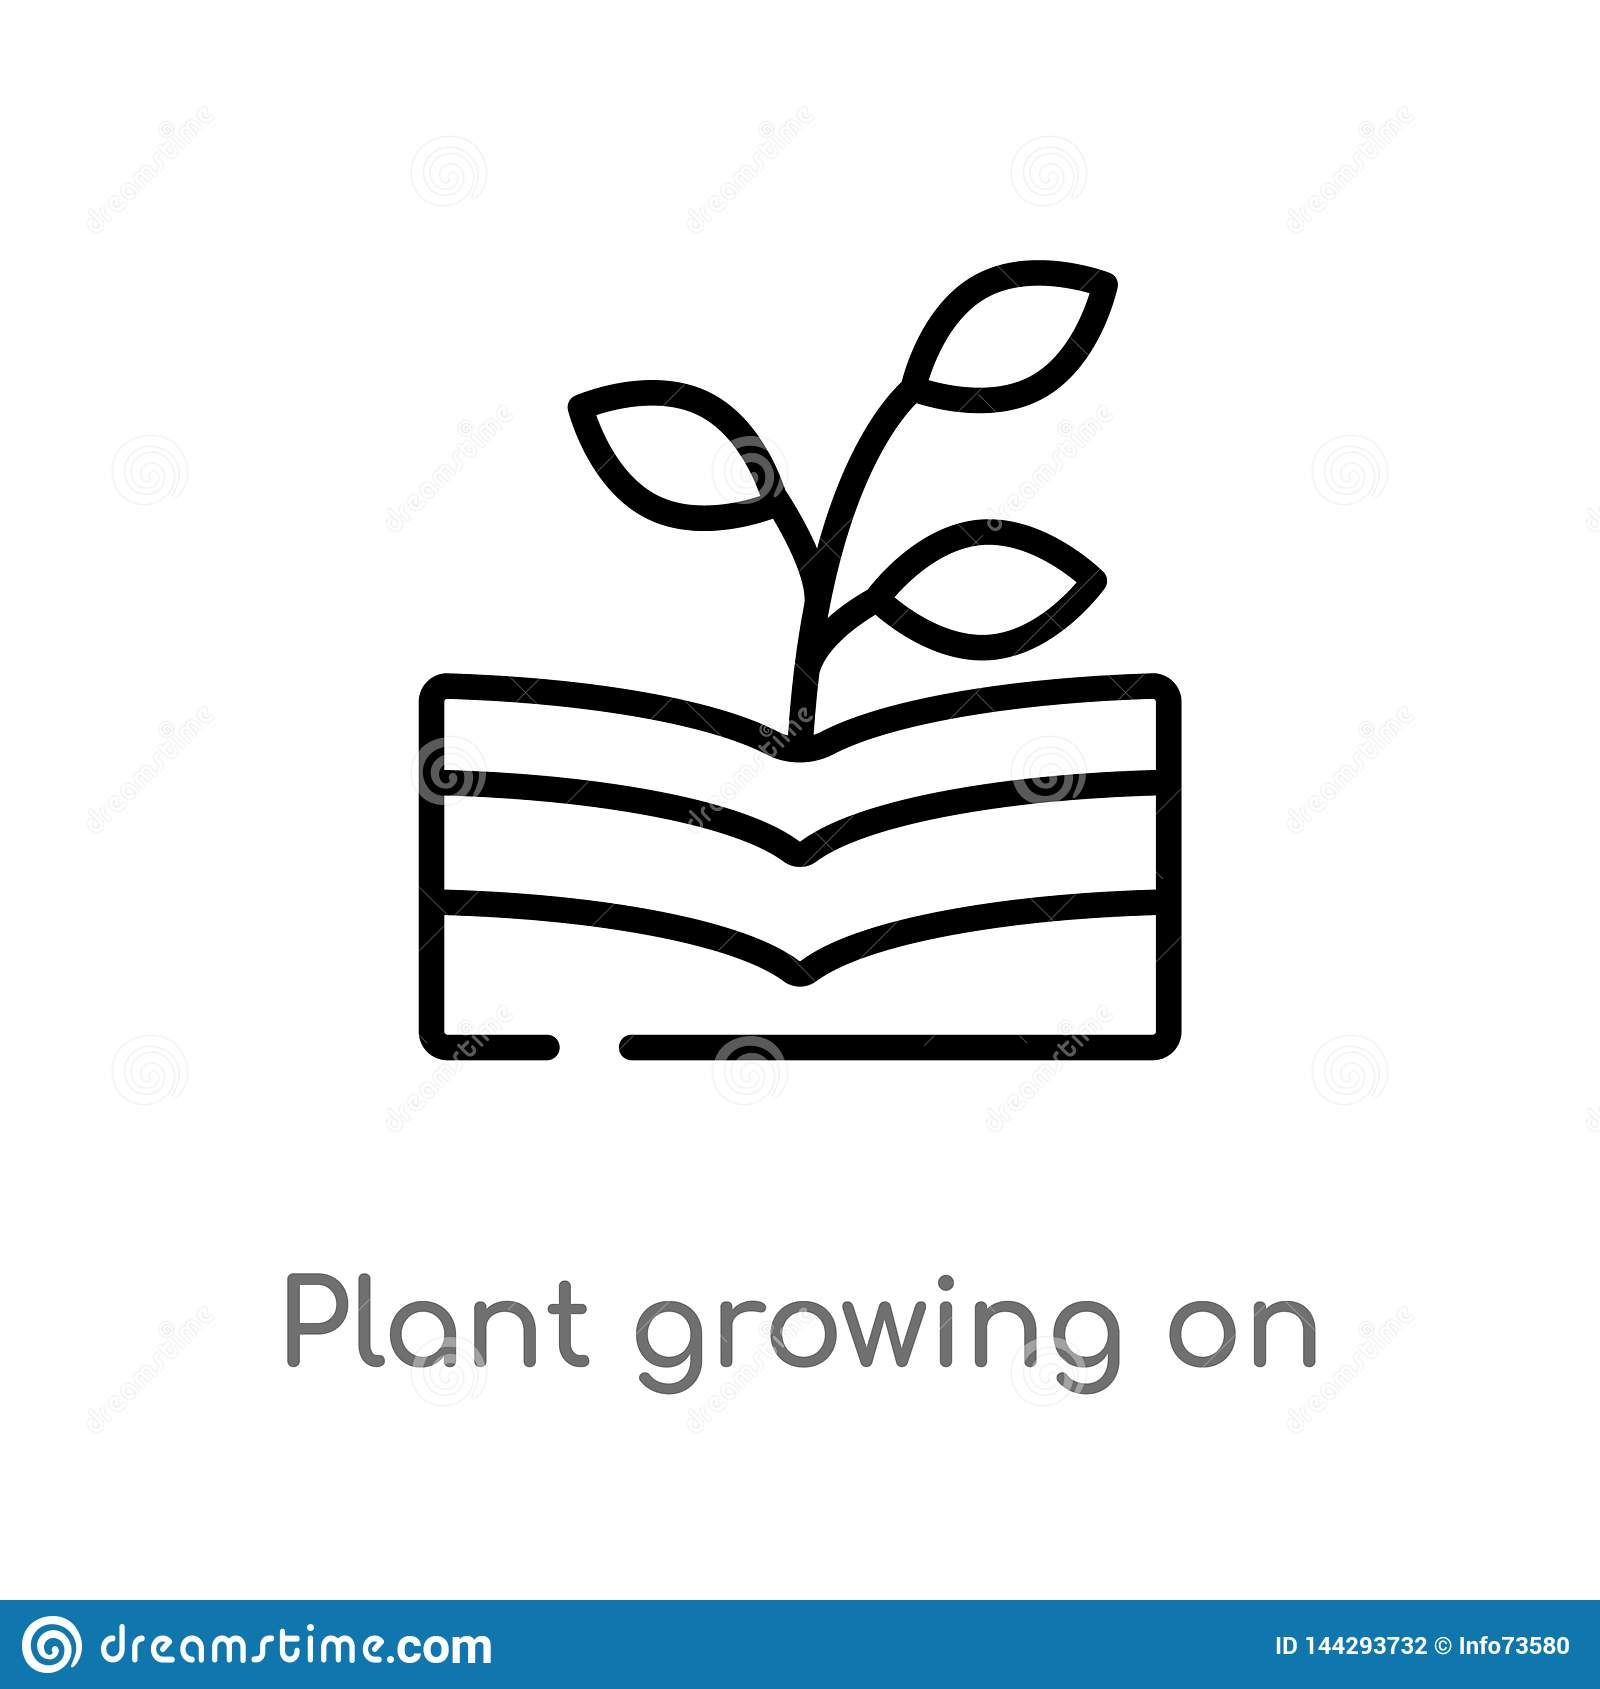 outline plant growing on book vector icon. isolated black simple line element illustration from nature concept. editable vector